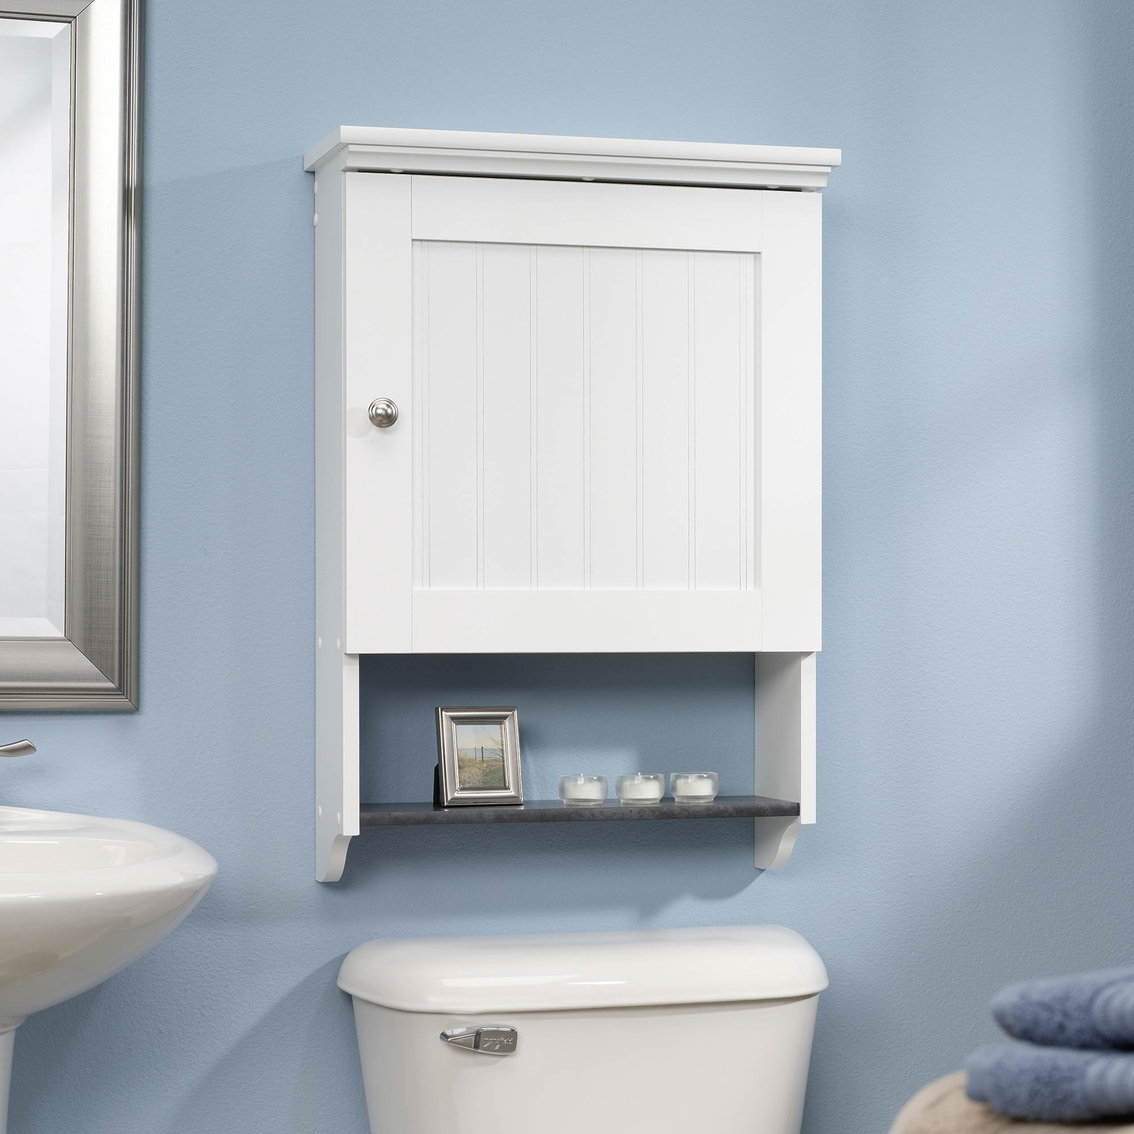 Sauder Caraway Wall Cabinet, Soft White With Slate Finish